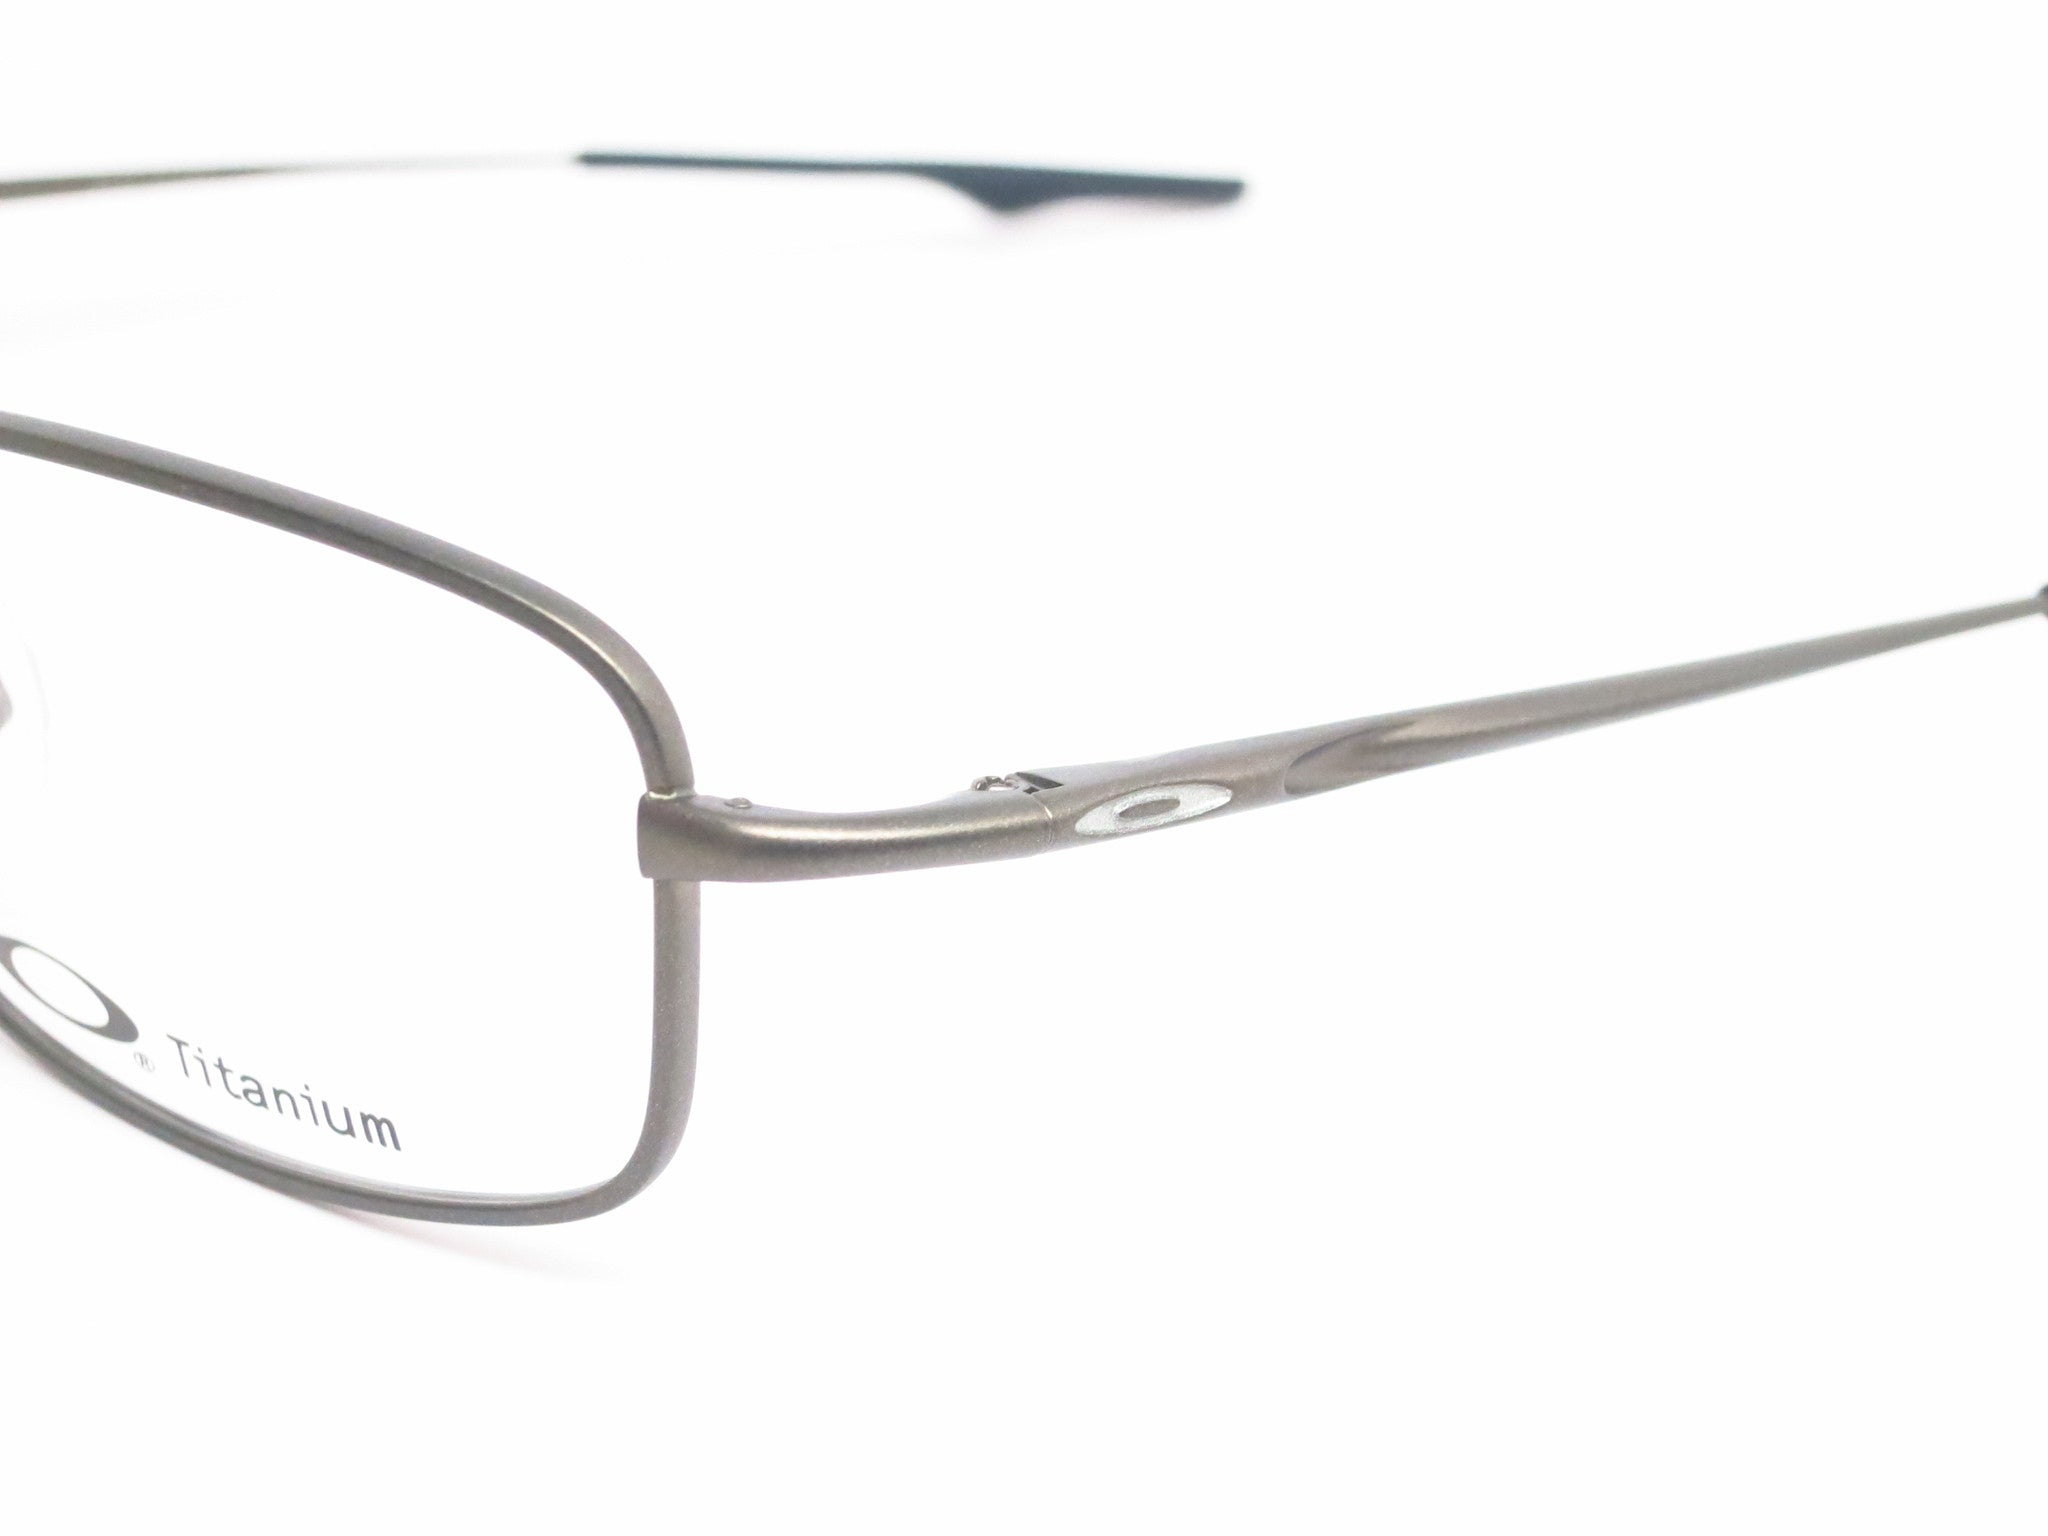 oakley eyeglasses keel pewter  oakley keel blade ox3125 0853 pewter eyeglasses eye heart shades oakley eyeglasses